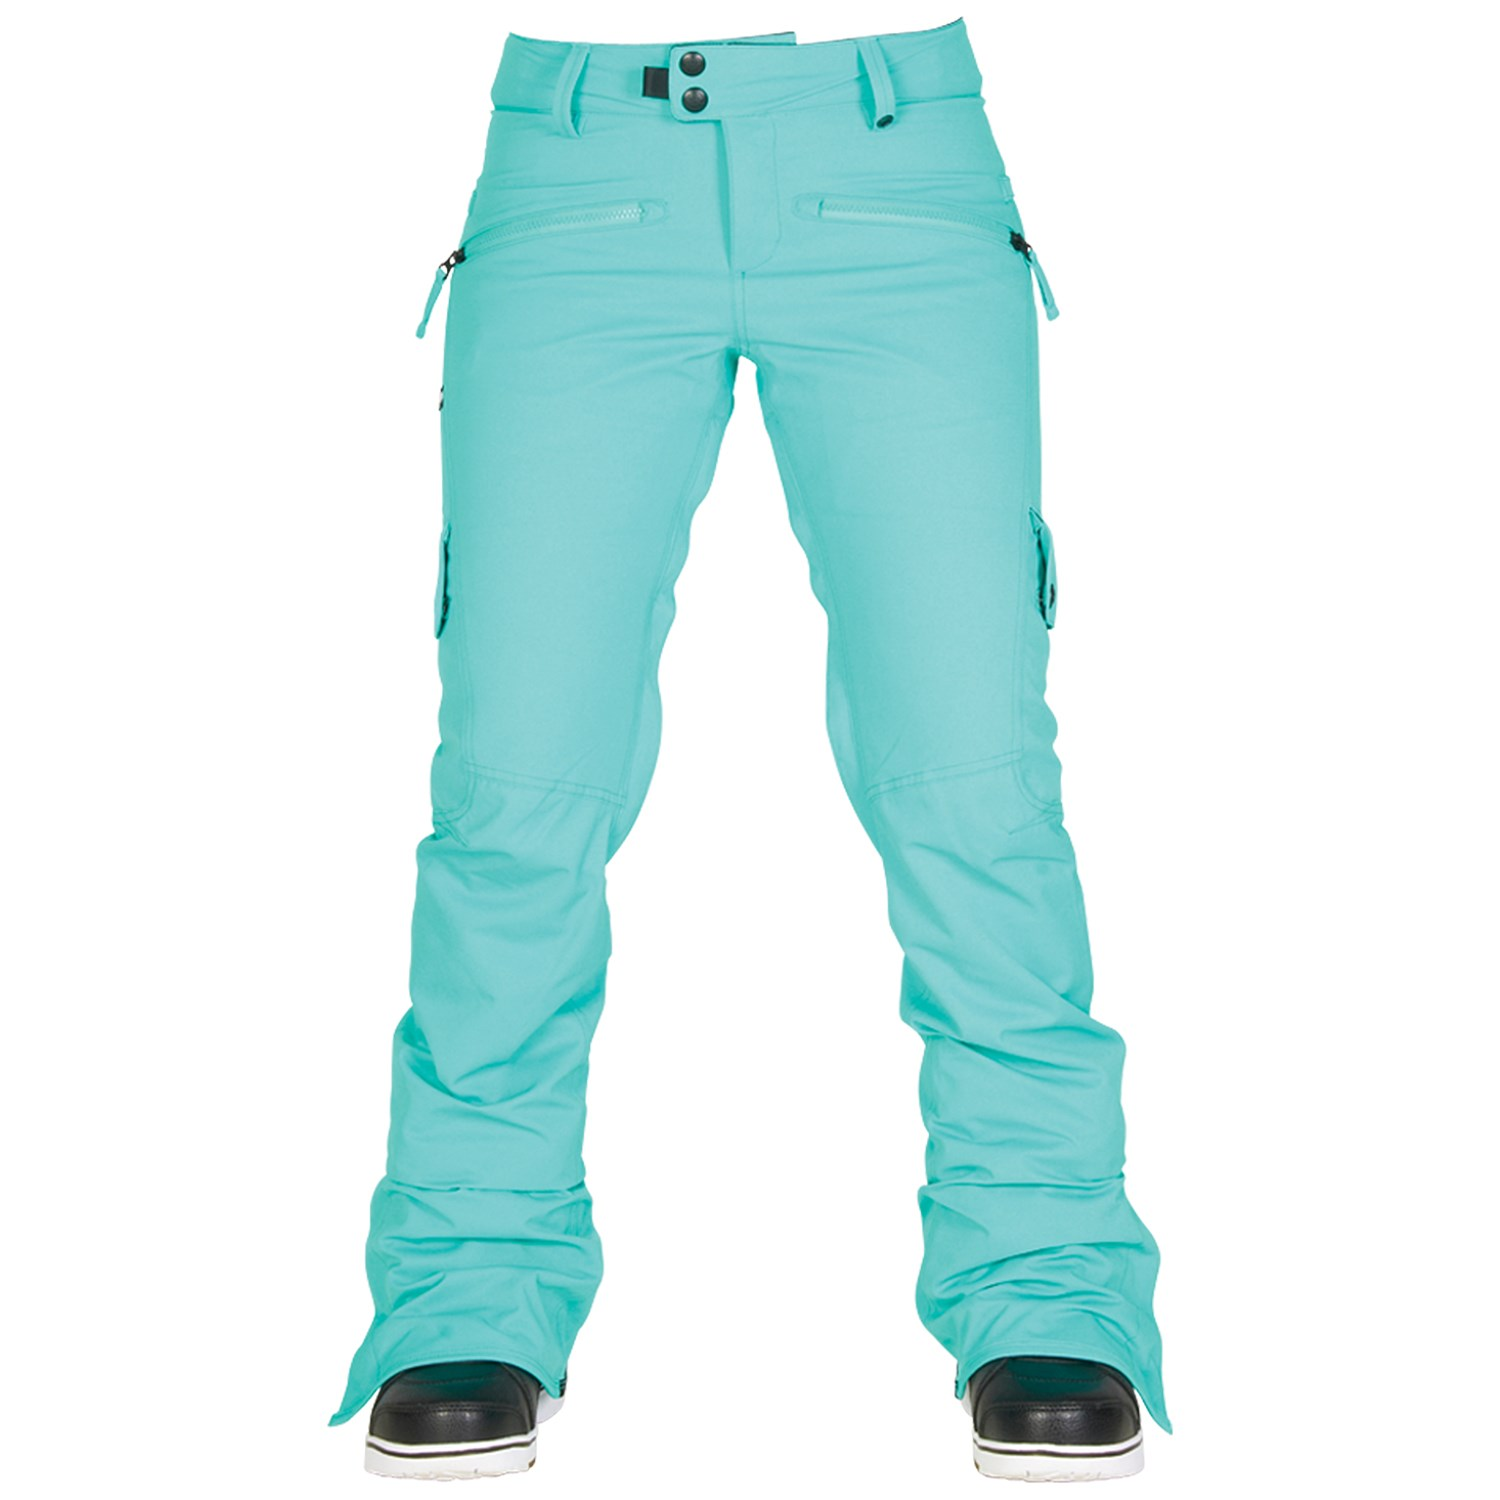 f1634b42 686 Authentic Mistress Insulated Pants - Women's | evo